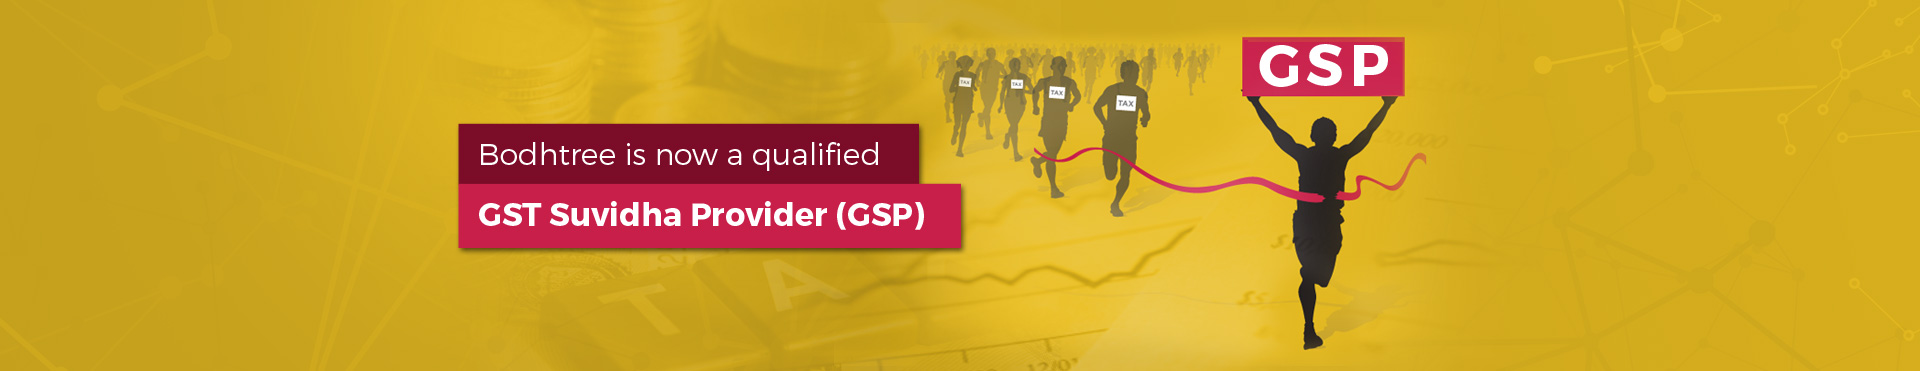 Bodhtree is now a qualified GST Suvidha Provider (GSP)